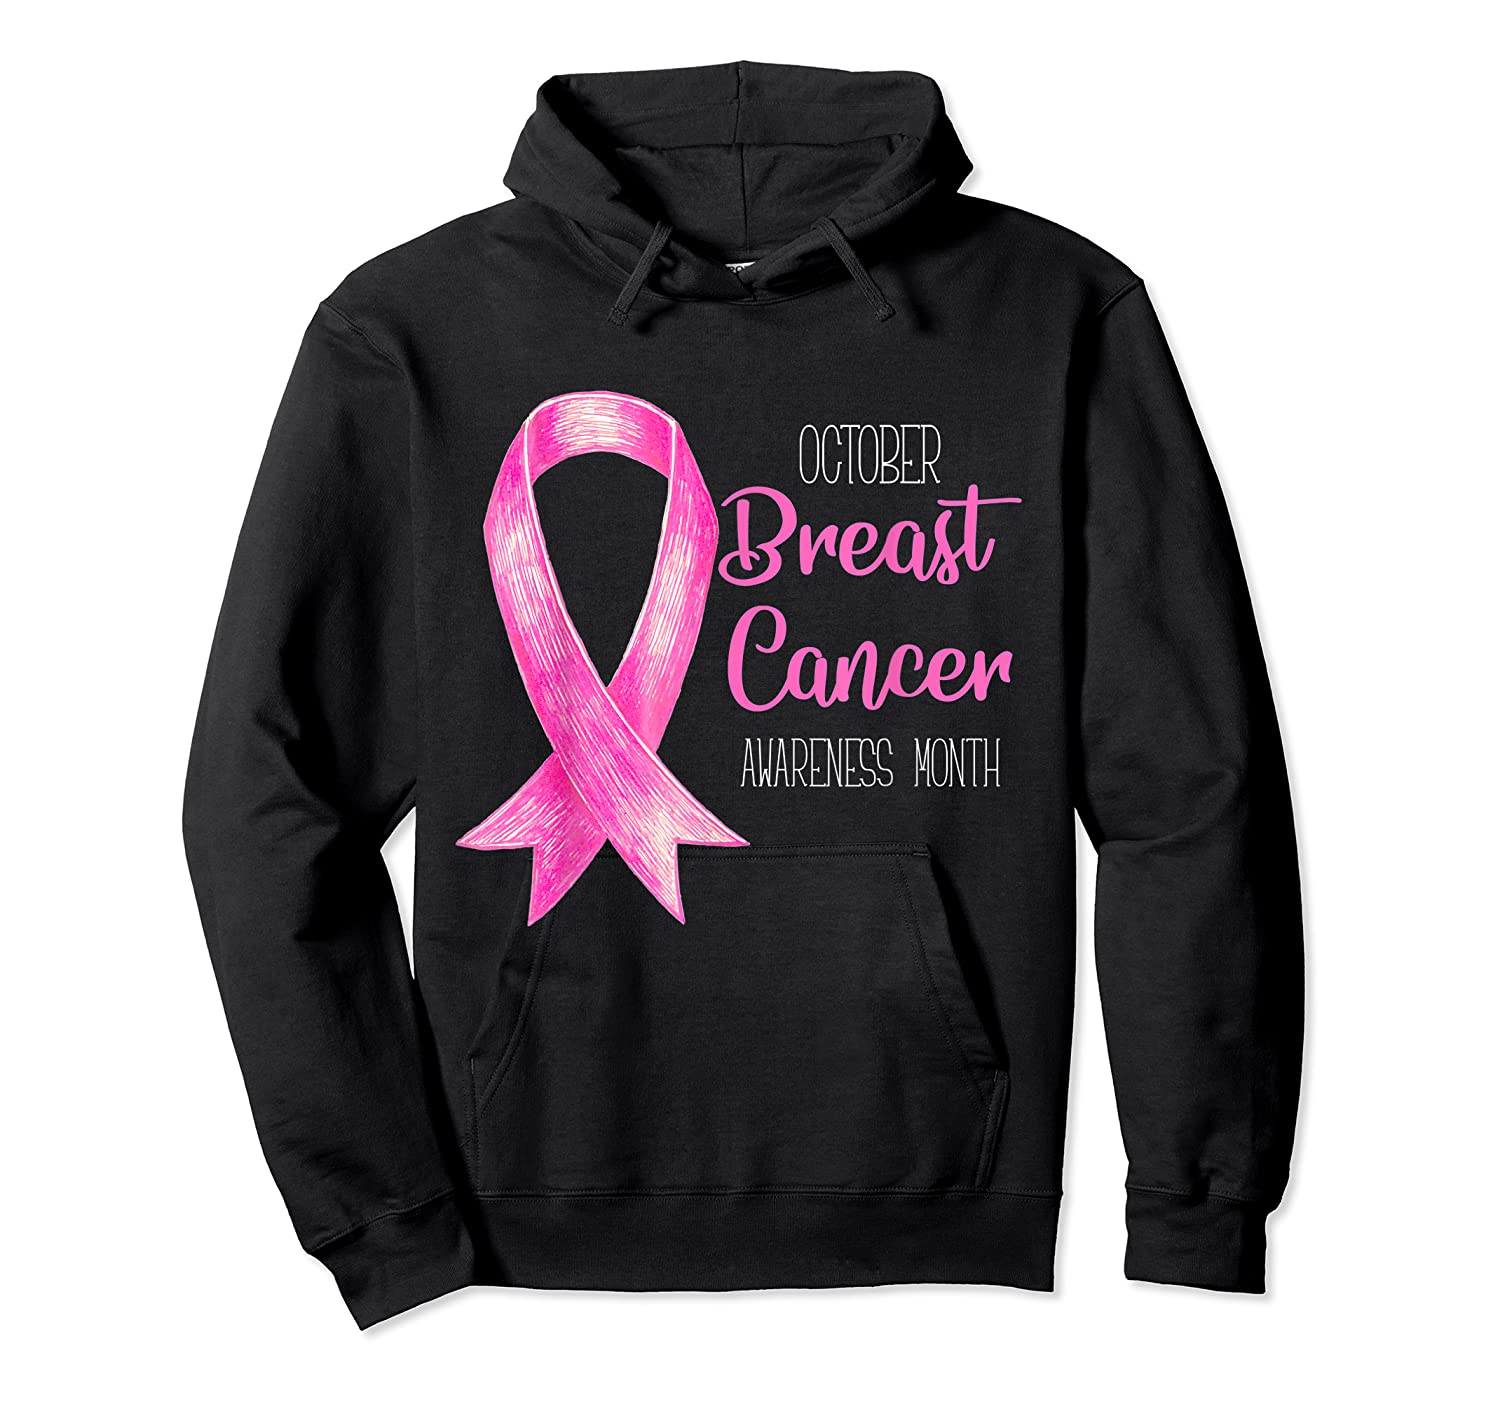 October Breast Cancer Awareness Month Shirt Show Support Unisex Pullover Hoodie